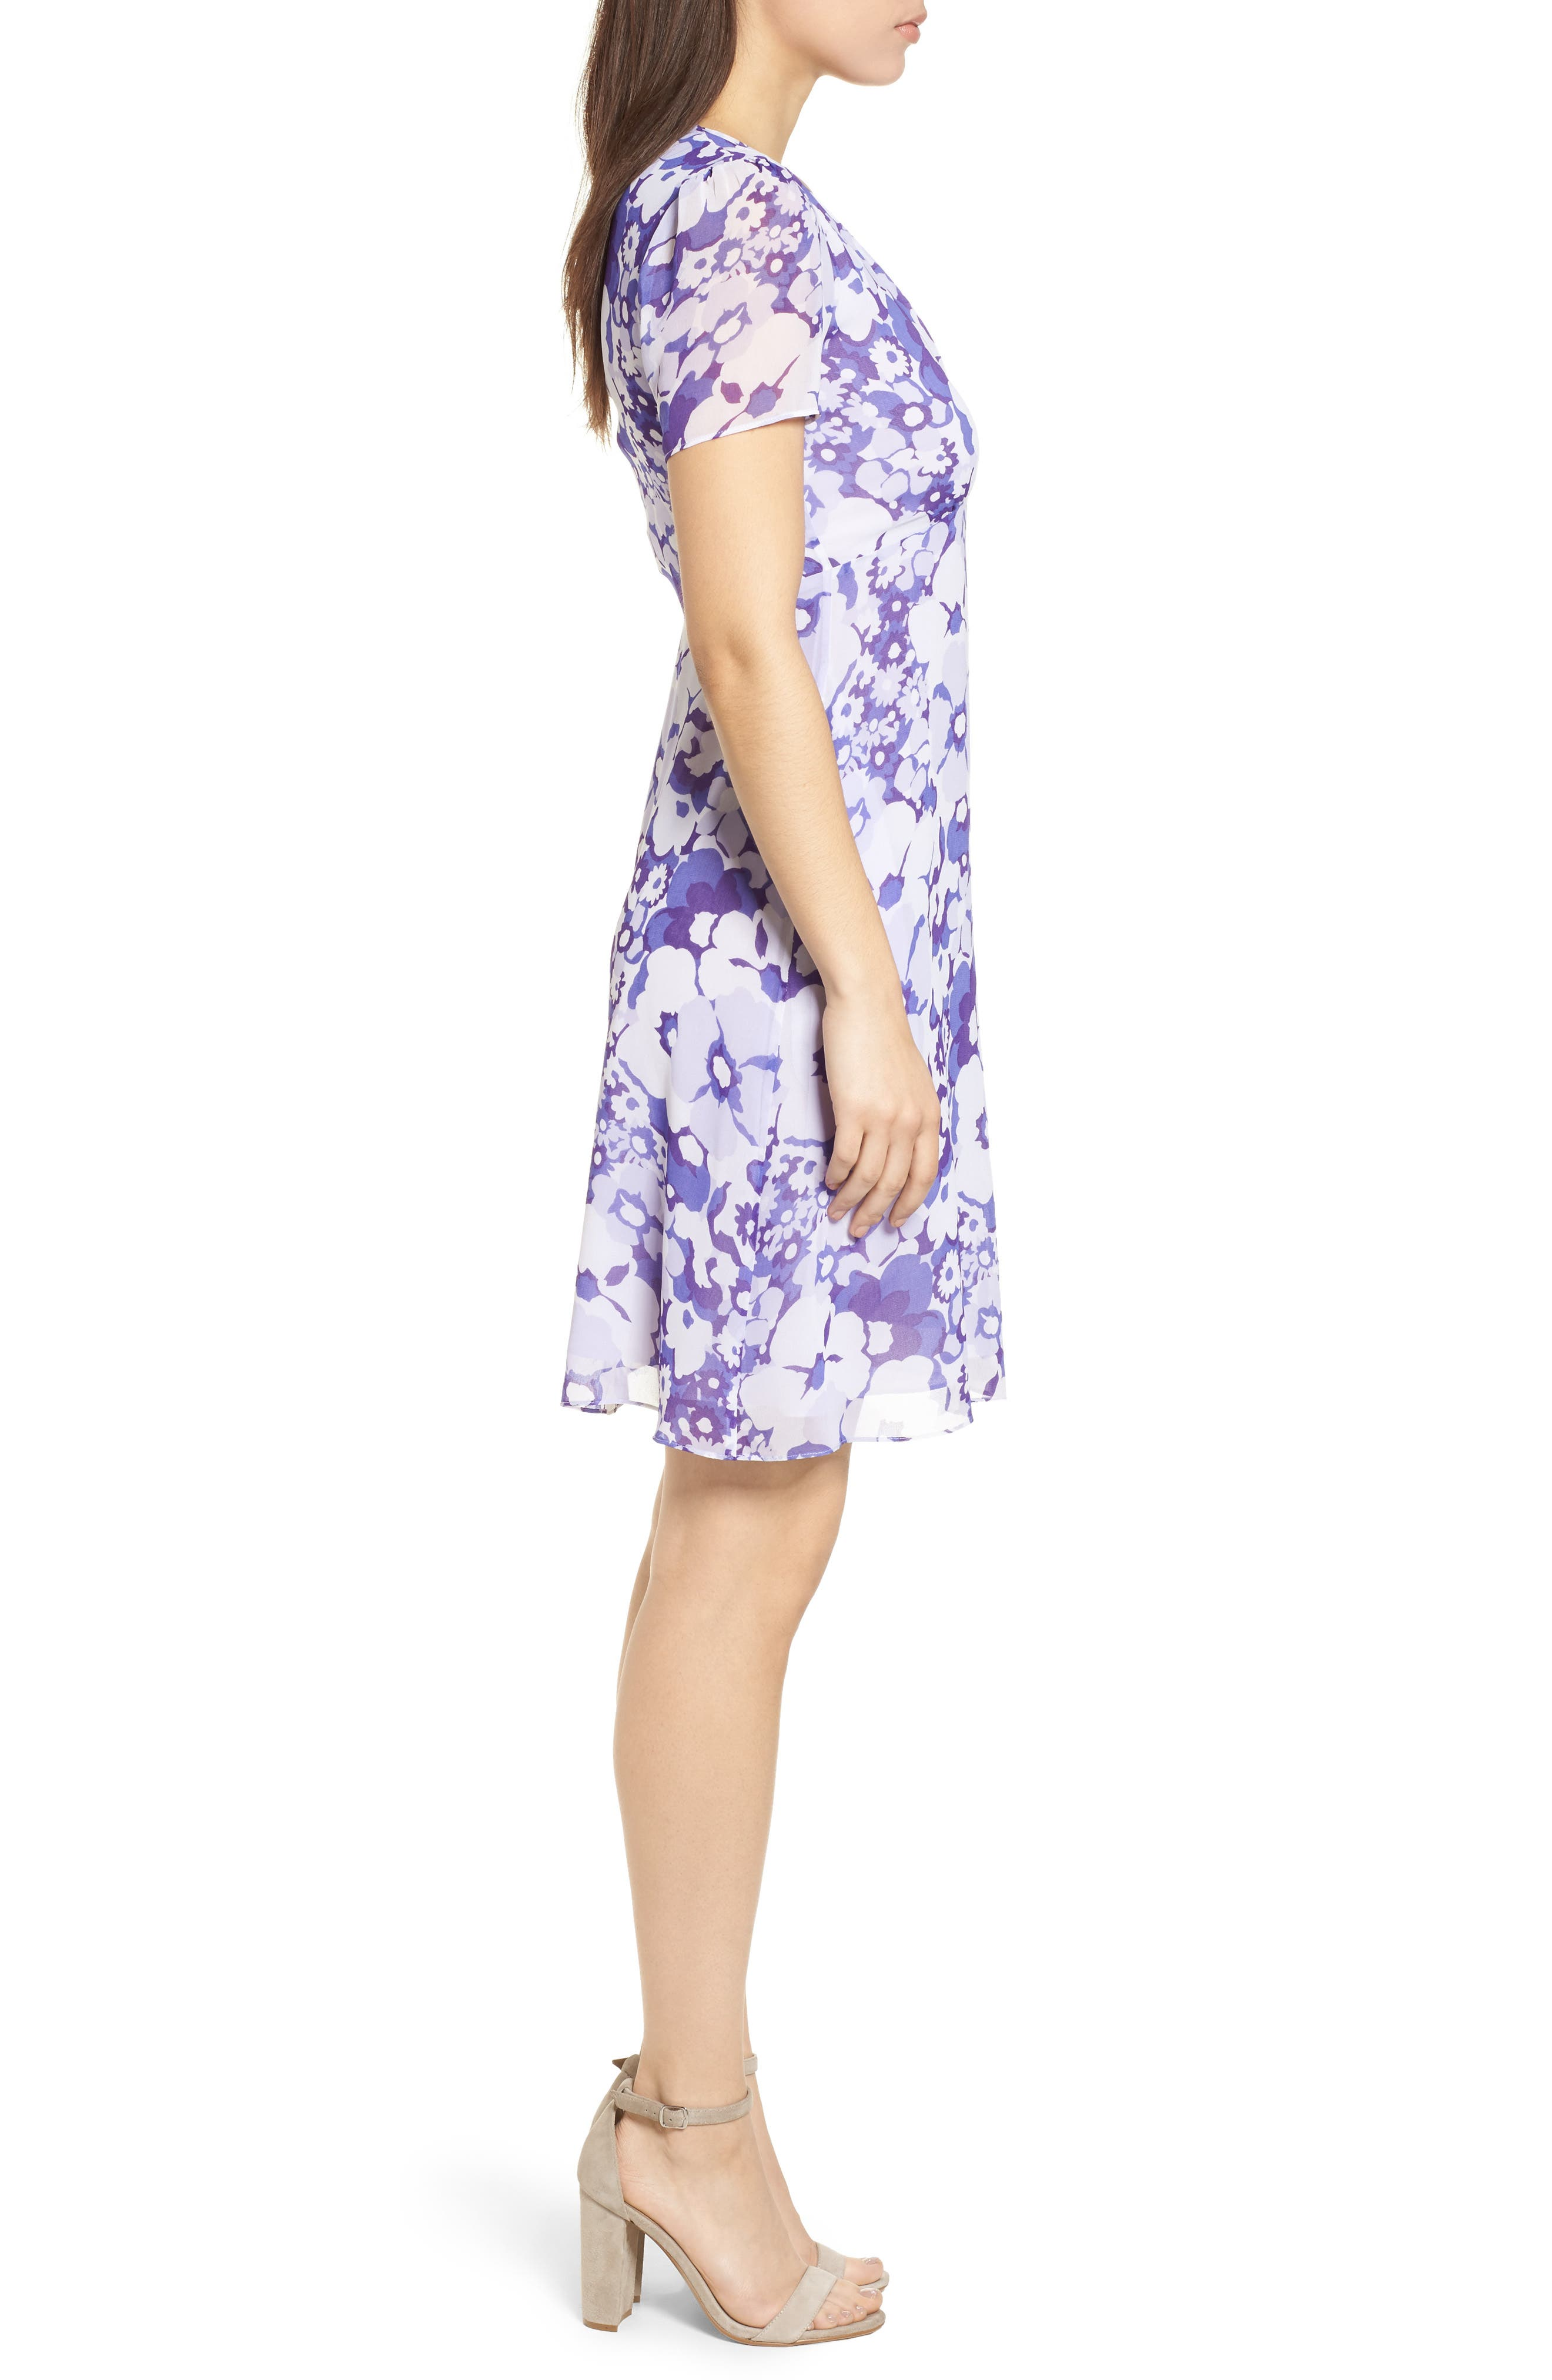 Springtime Floral Dress,                             Alternate thumbnail 3, color,                             Amethyst/ Light Quartz Multi